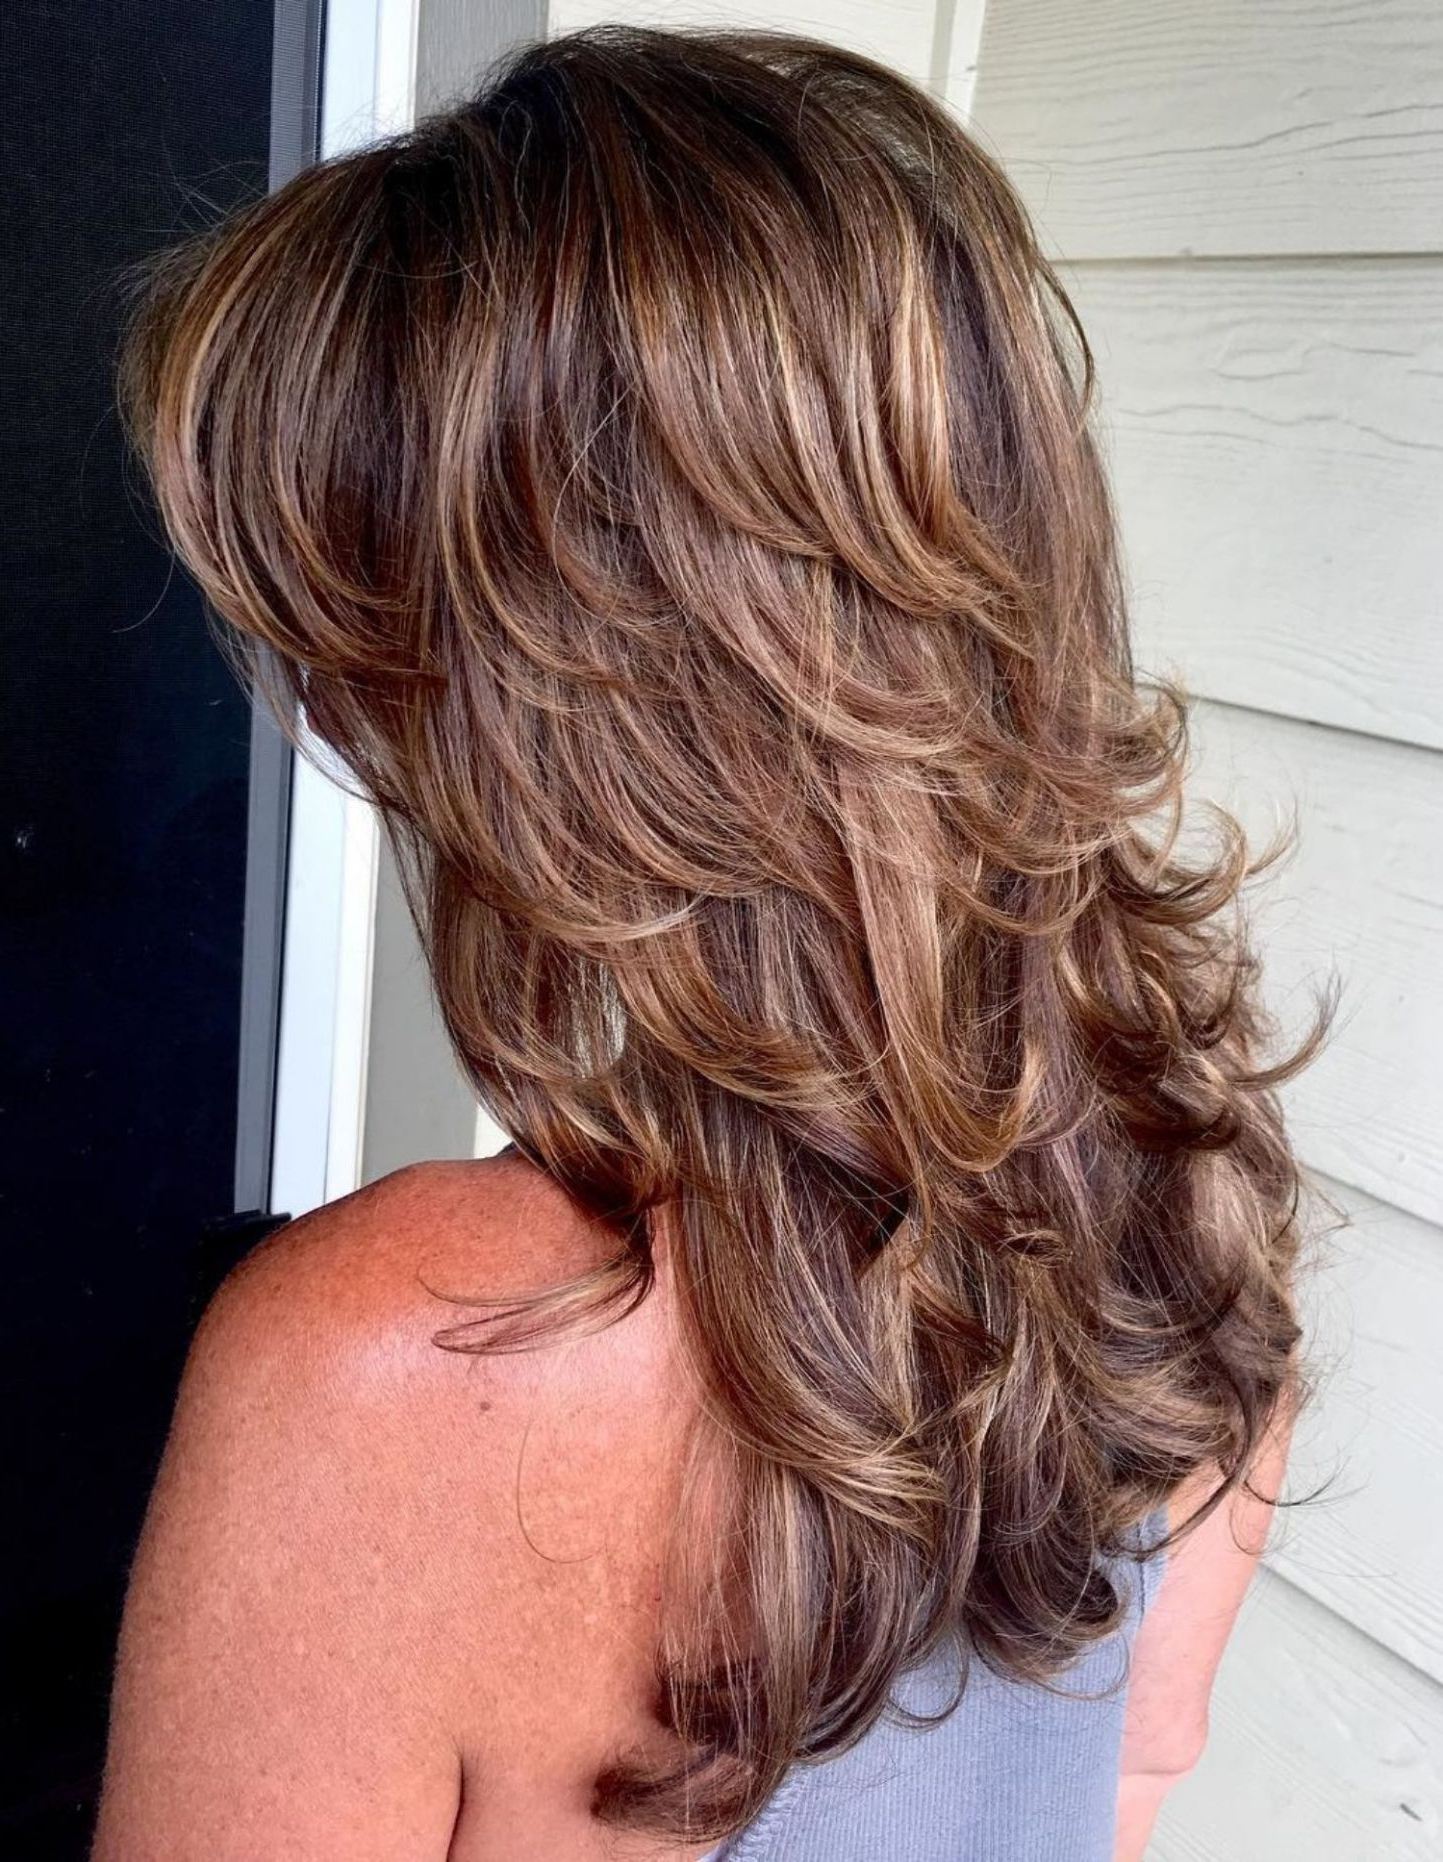 Current Long Shag Haircuts With Extreme Layers With Pin On Long Hairstyles (View 2 of 20)